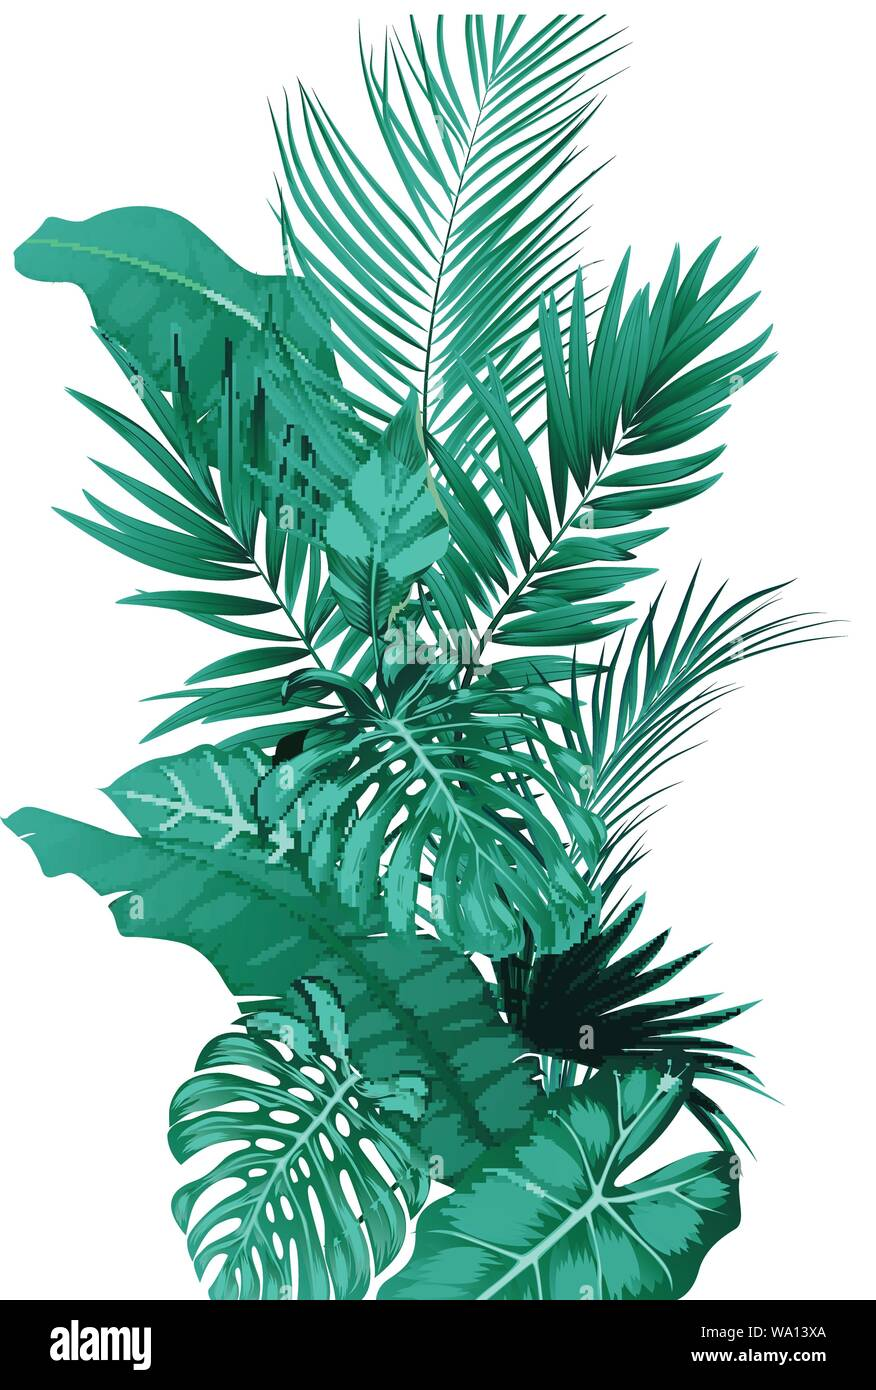 Tropical Leaves Forest Background Stock Vector Image Art Alamy 116,000+ vectors, stock photos & psd files. alamy